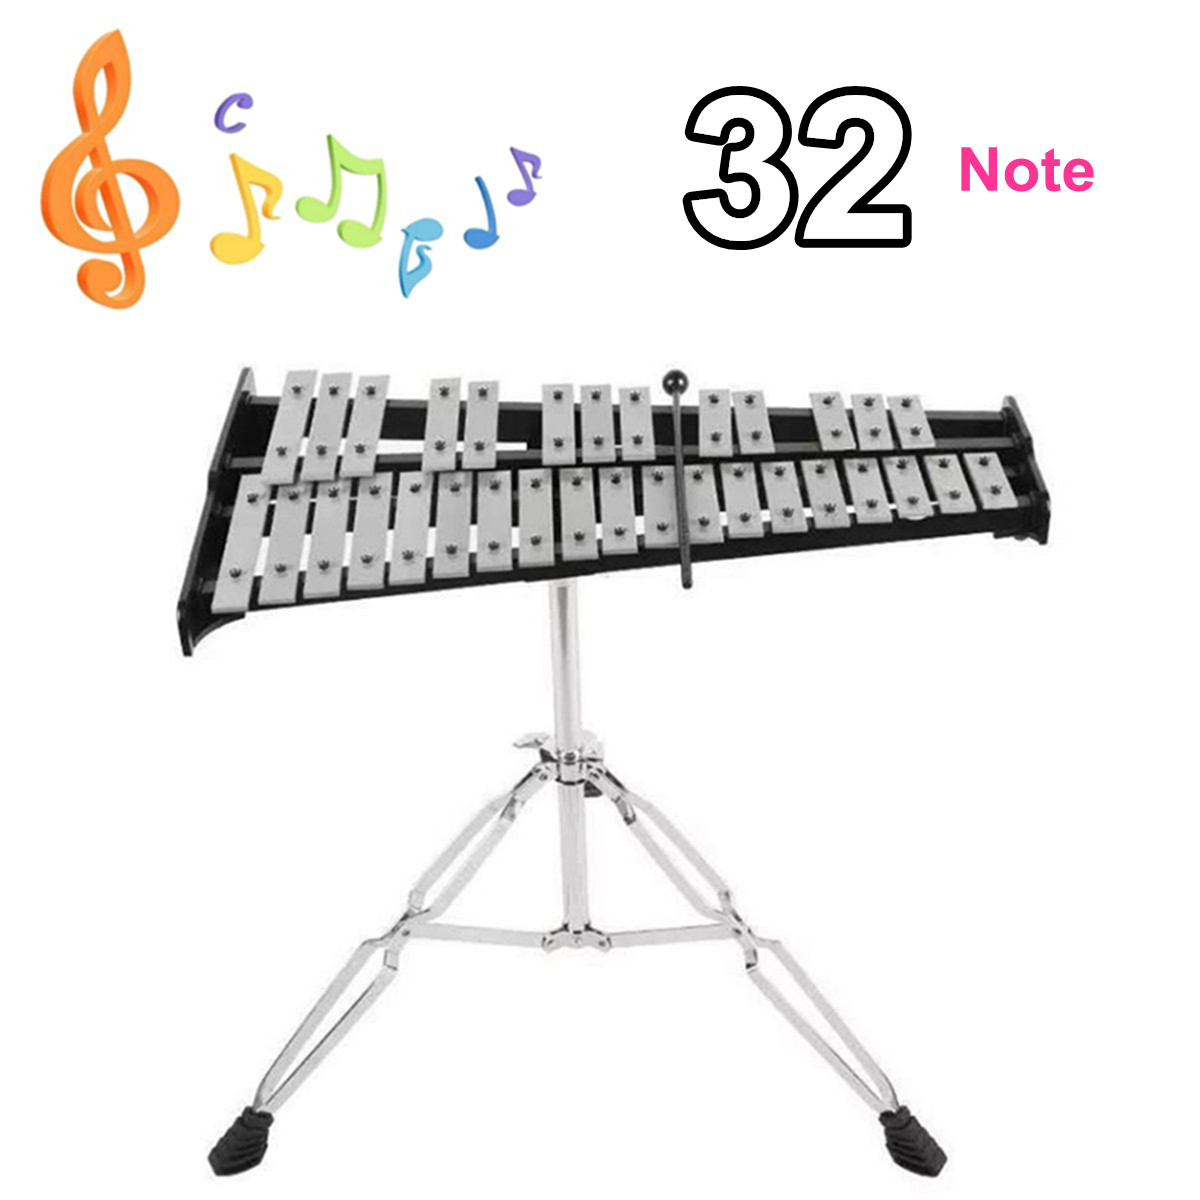 32 Note Glockenspiel Xylophone Wooden Frame Aluminum Educational Percussion Musical Instrument With Adjustable Stand32 Note Glockenspiel Xylophone Wooden Frame Aluminum Educational Percussion Musical Instrument With Adjustable Stand